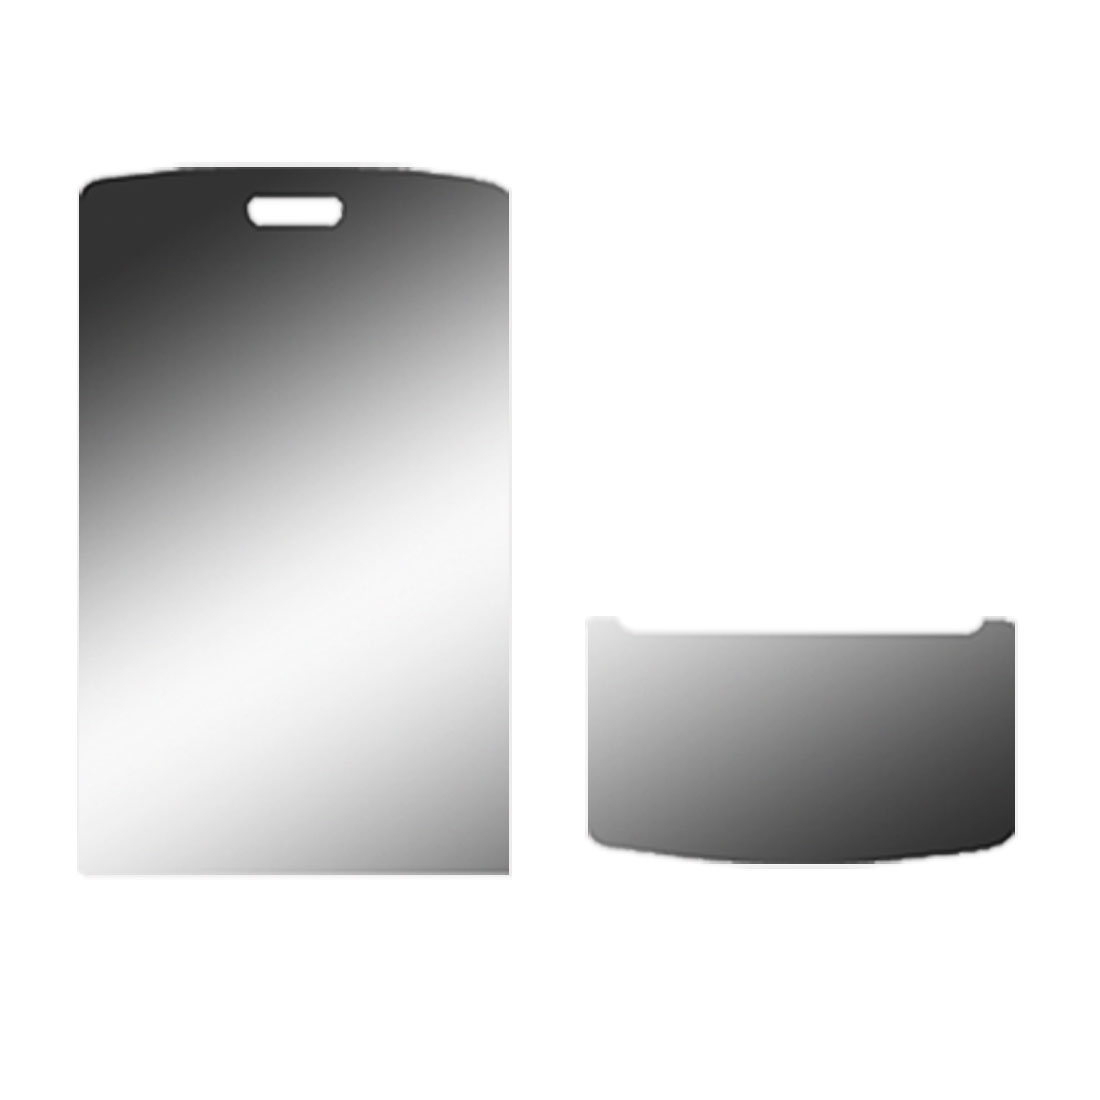 Screen Protector Guard Film for LG KF510 Mobile